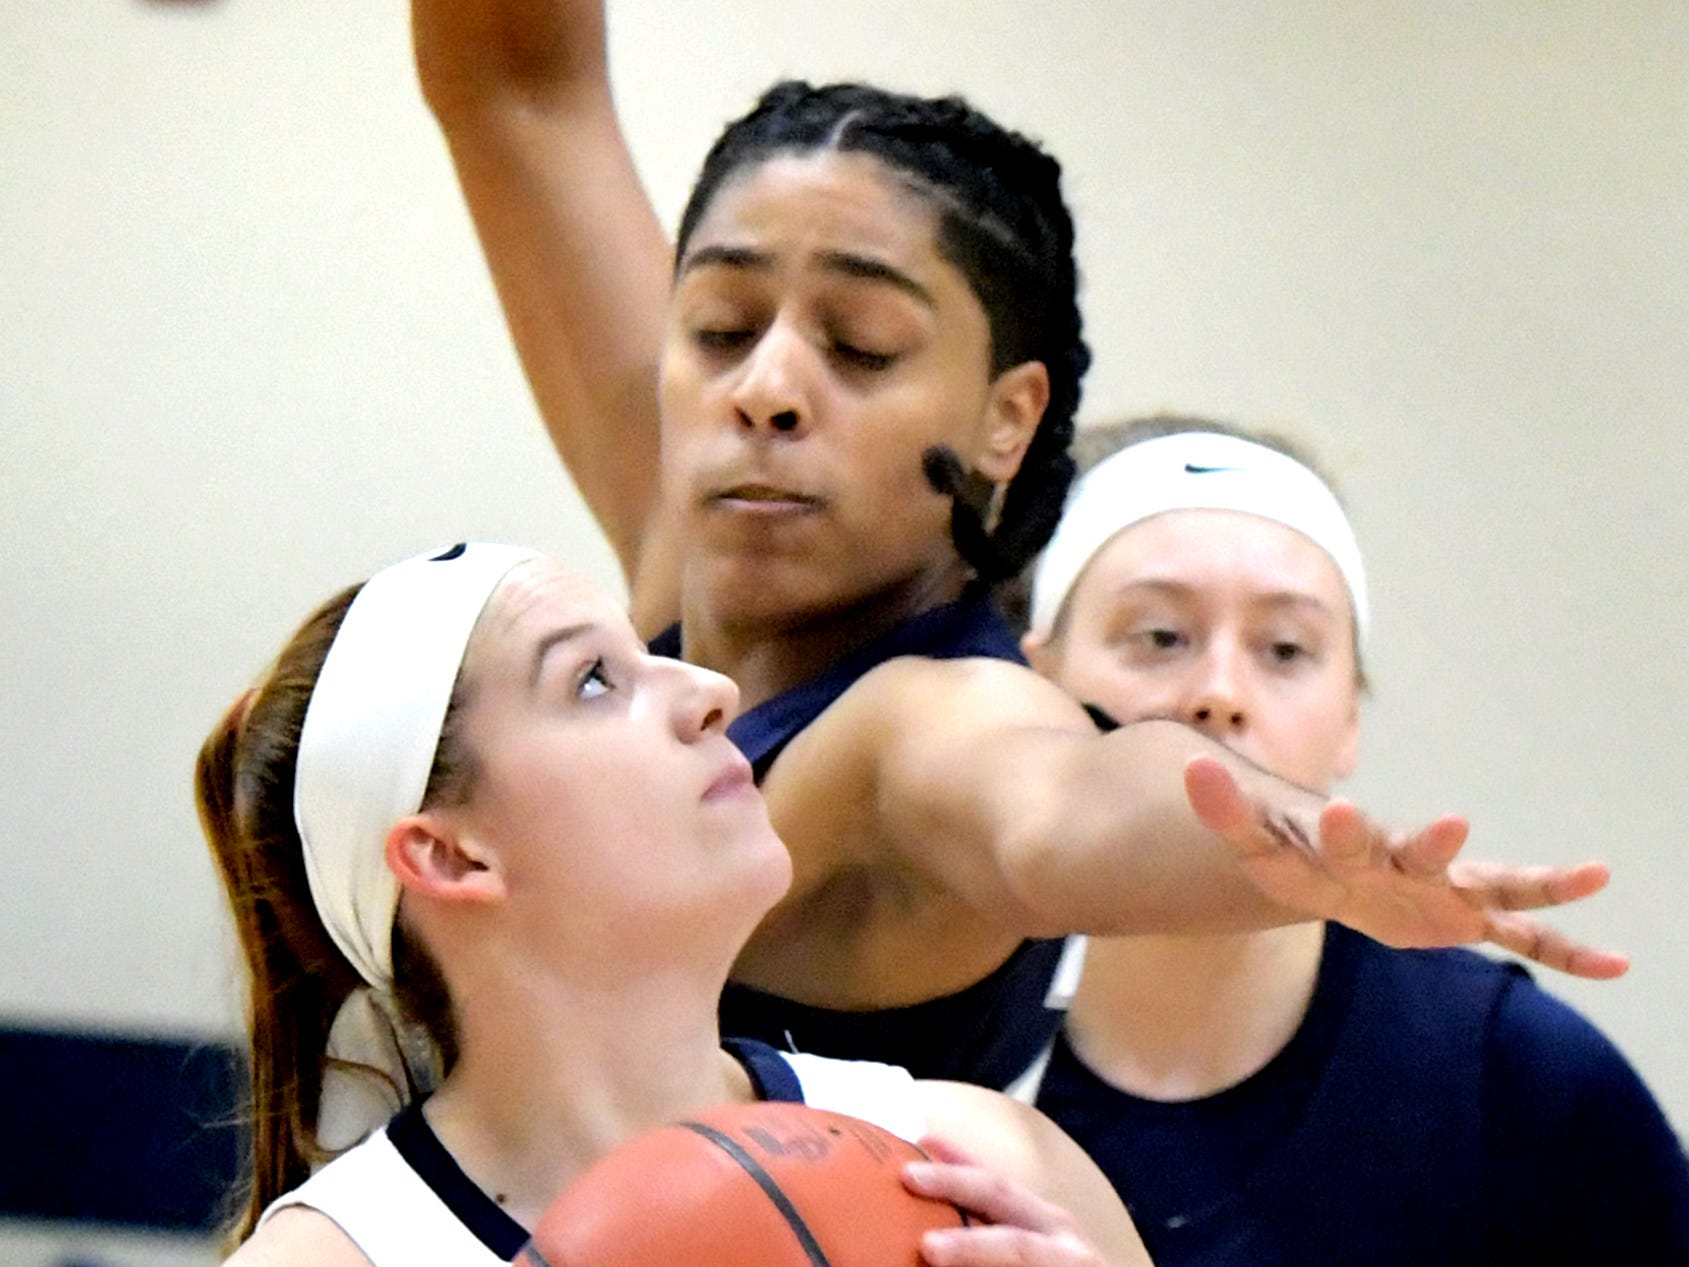 Penn State York's Janelle Kress looks for the hoop with Penn State Wilkes-Barre's Genesis Rodriguez defending during action in York Tuesday, Nov. 27, 2018. Bill Kalina photo